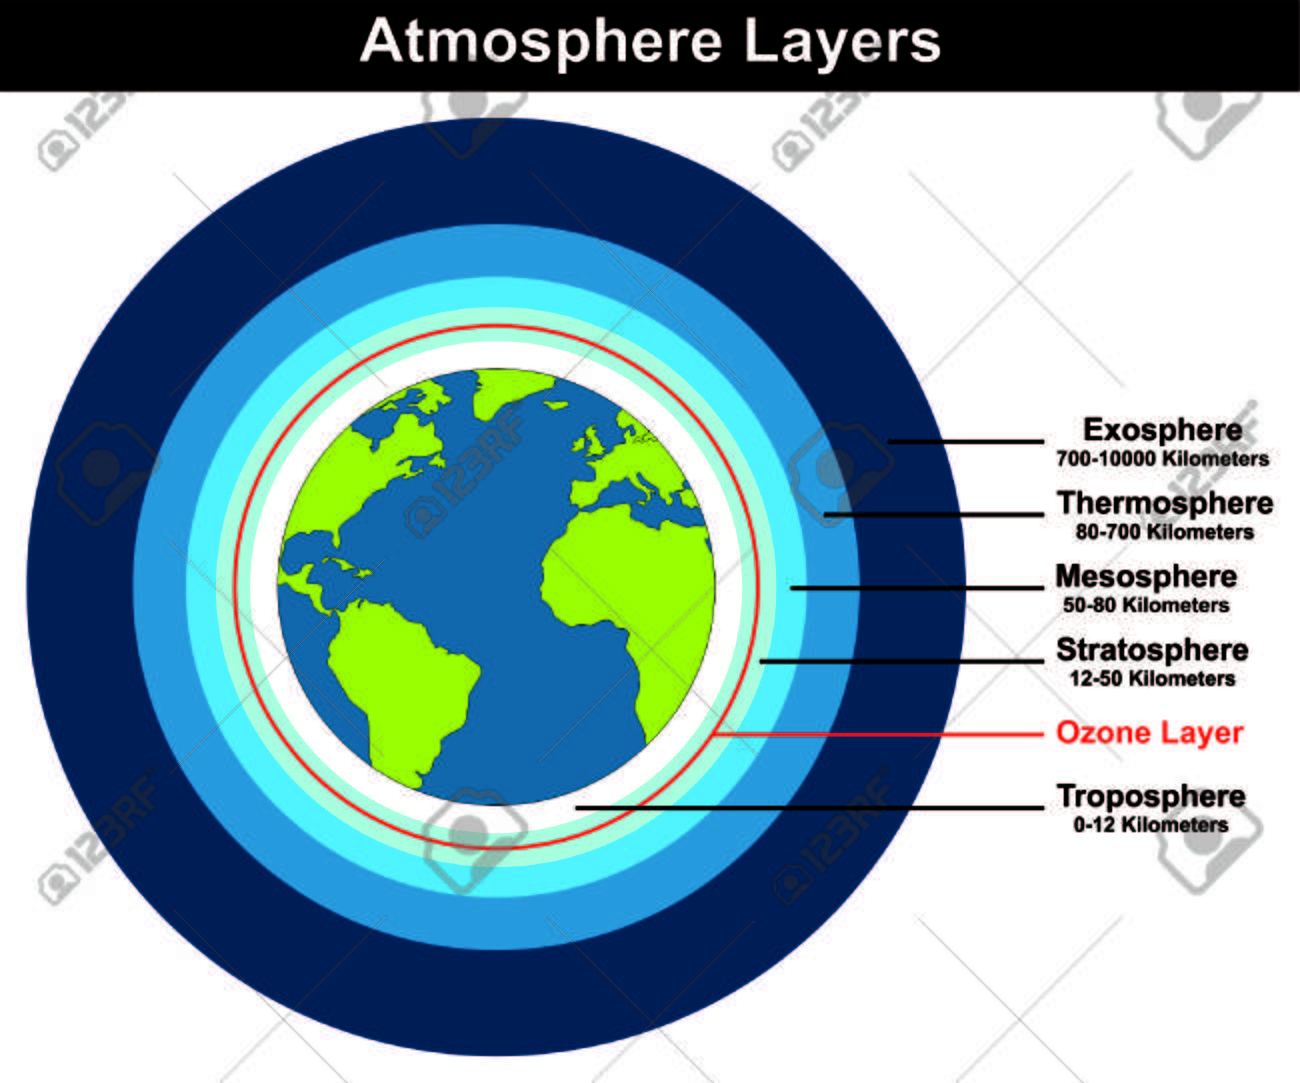 atmosphere layers structure of earth globe approximate thickness length  kilometers diagram with ozone layer troposhere stratosphere